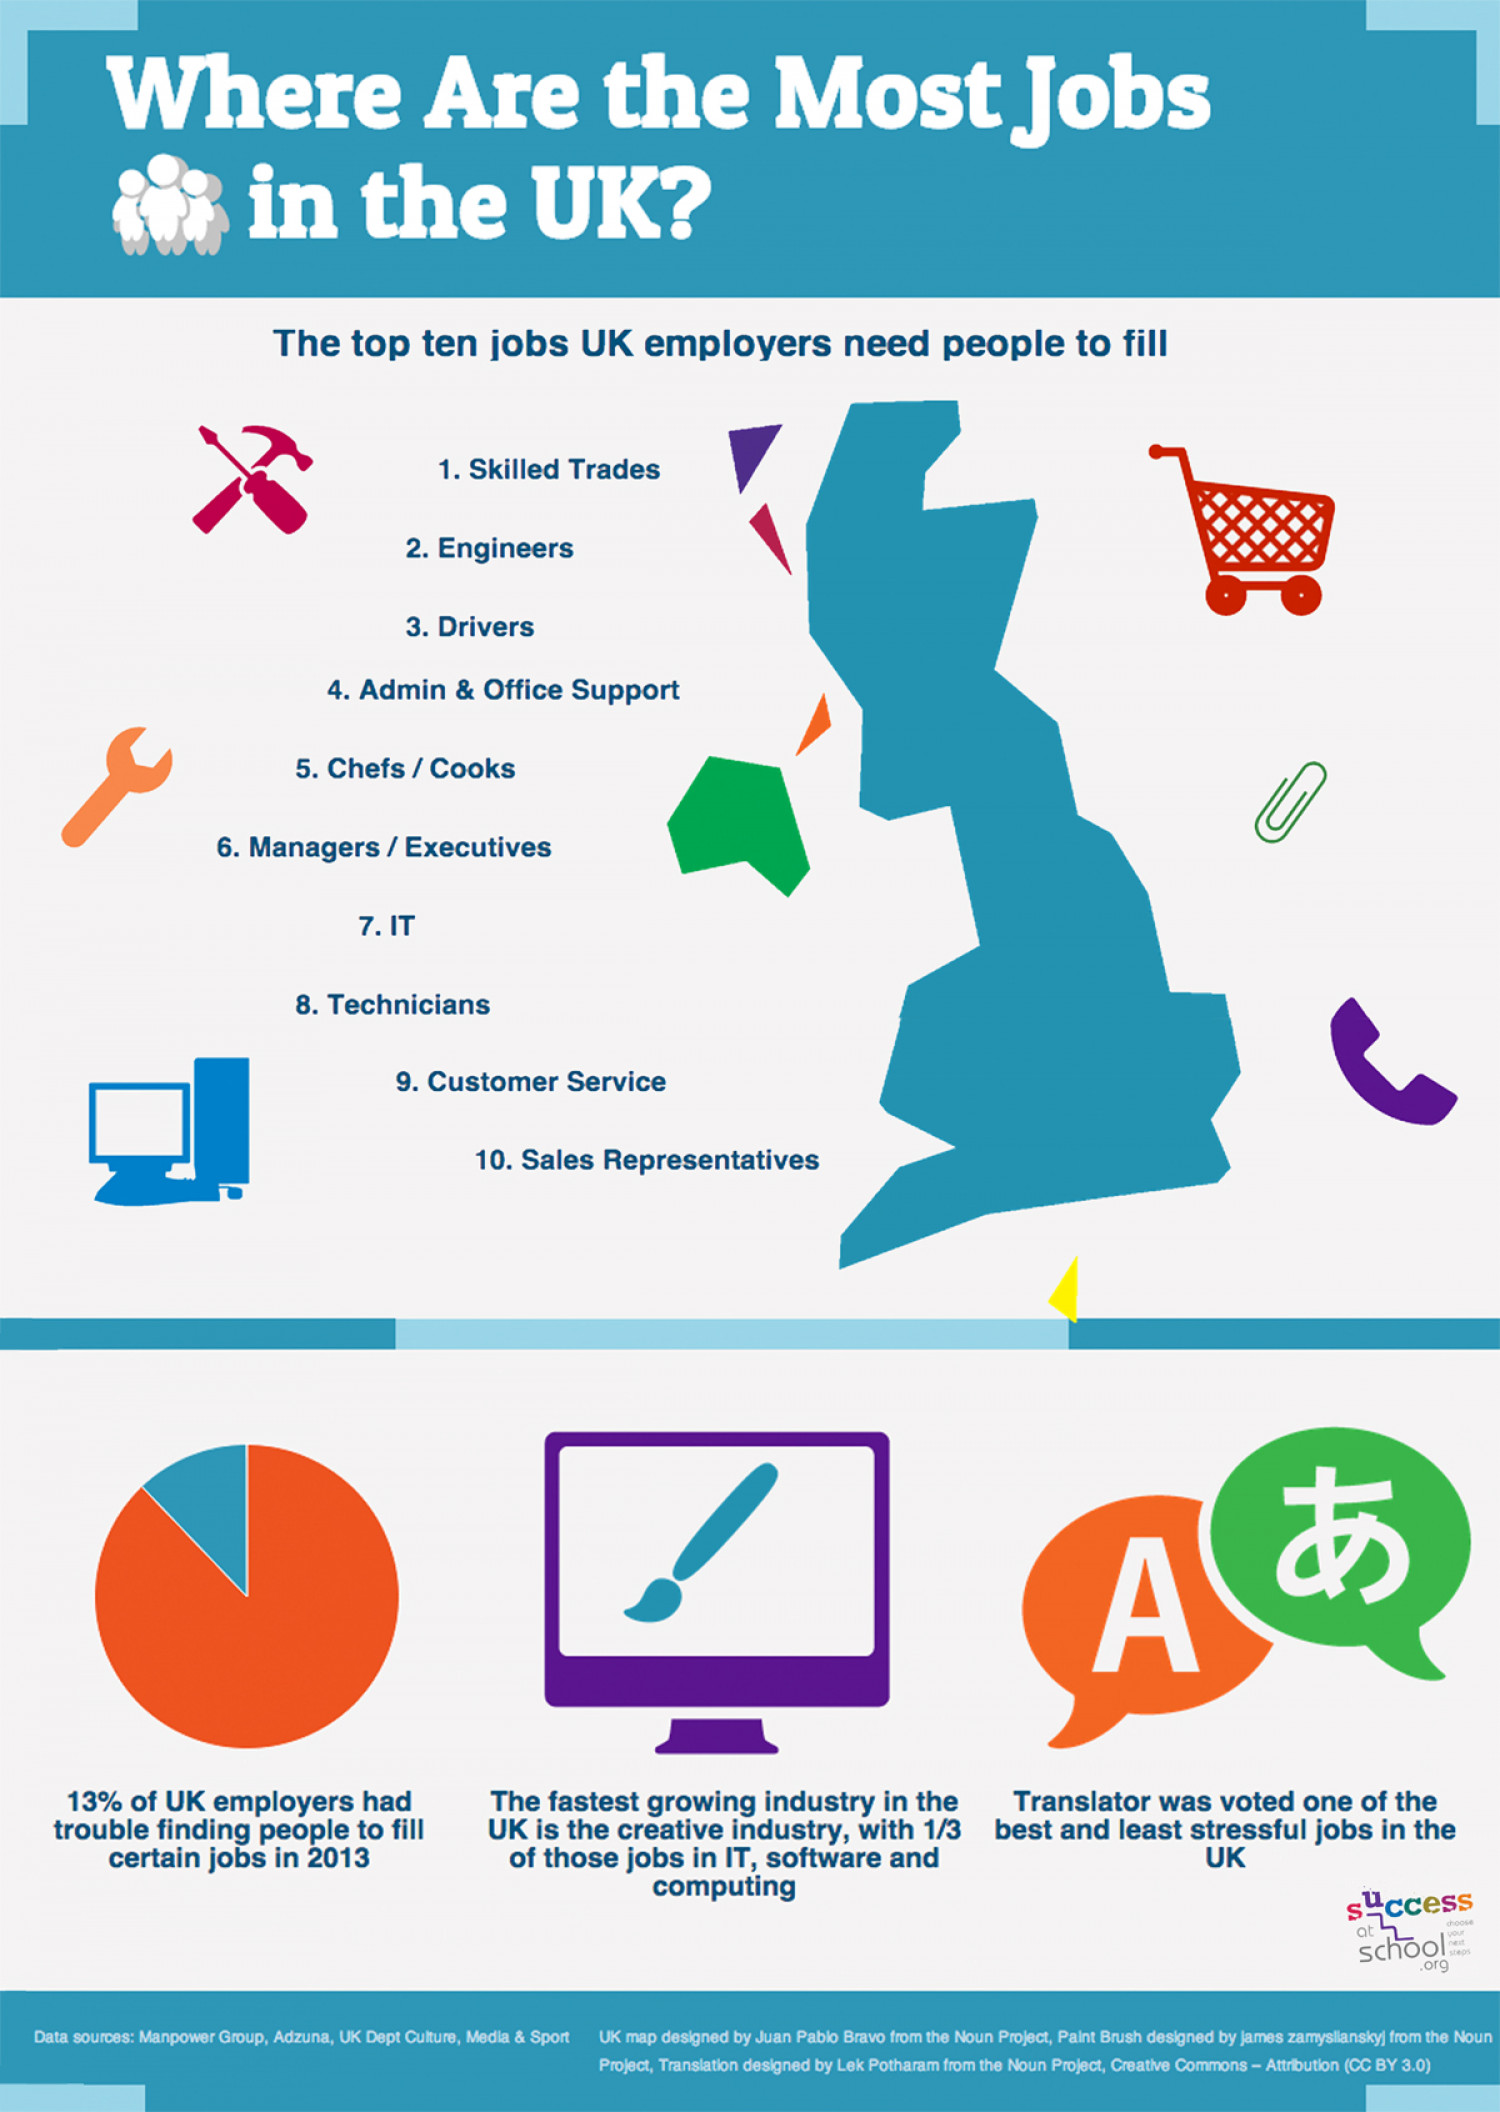 Where Are the Most Jobs in the UK? Infographic